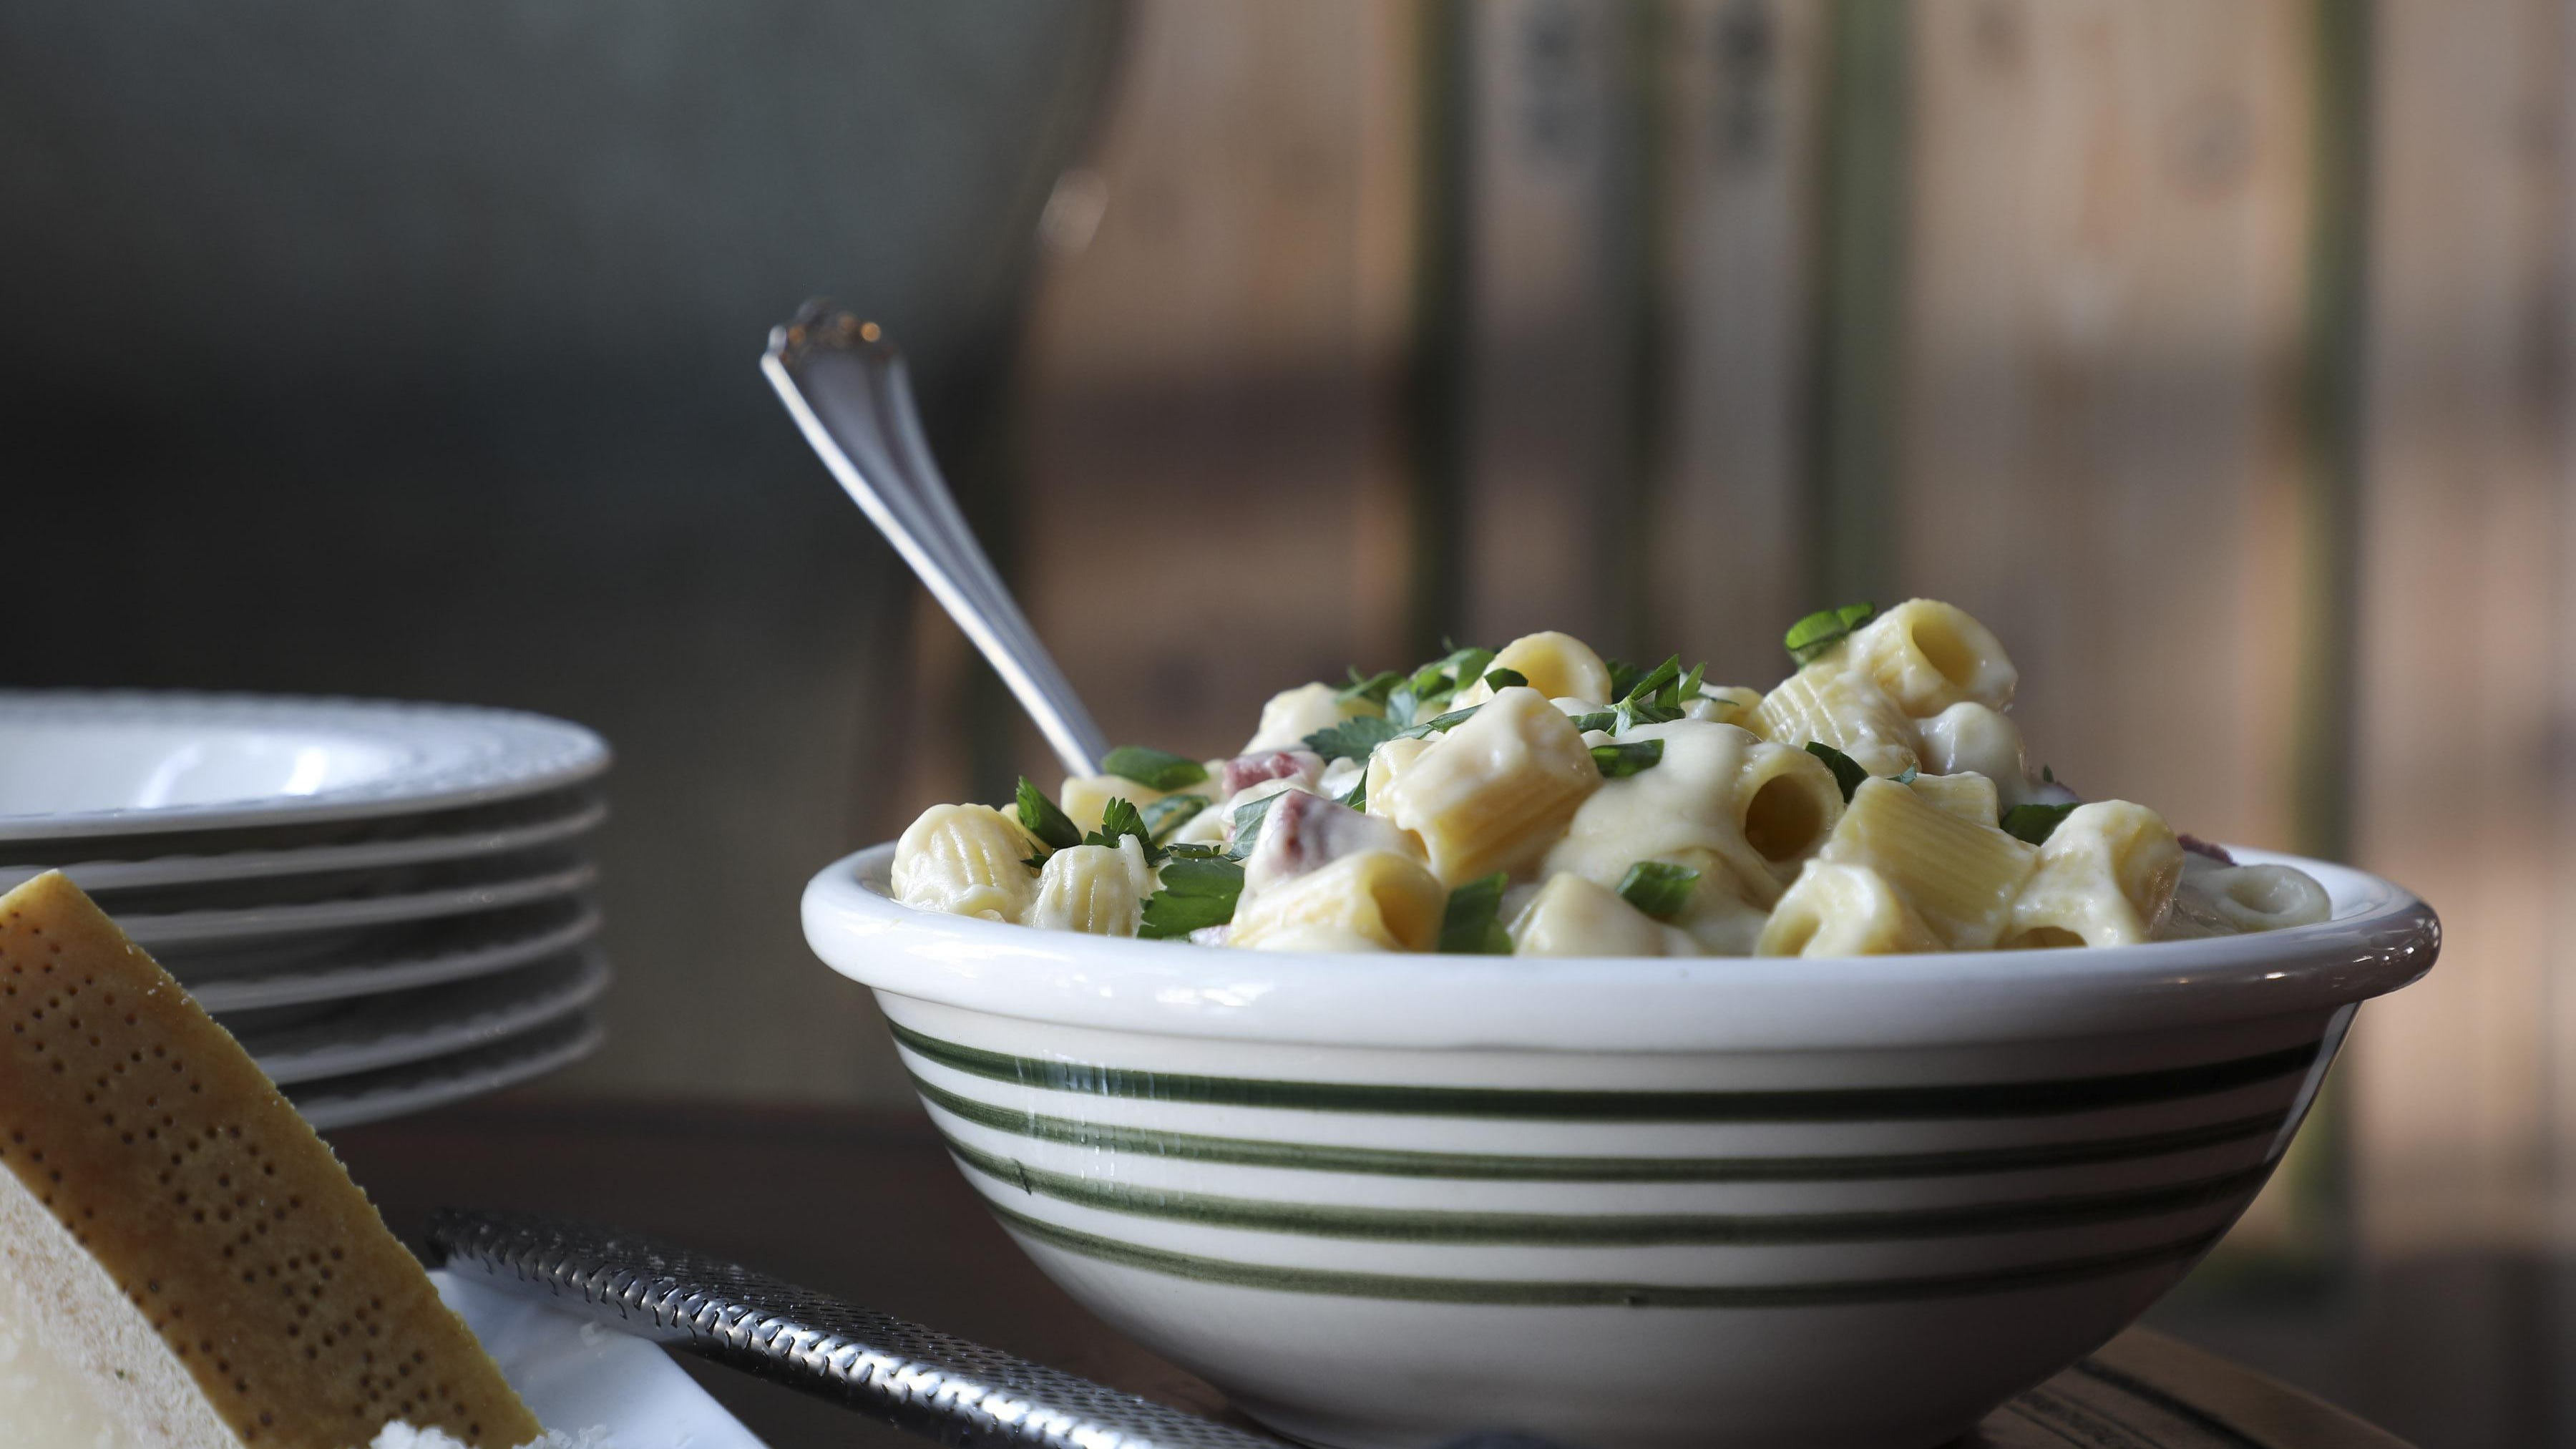 Corned beef plus shells and cheese equals holiday comfort